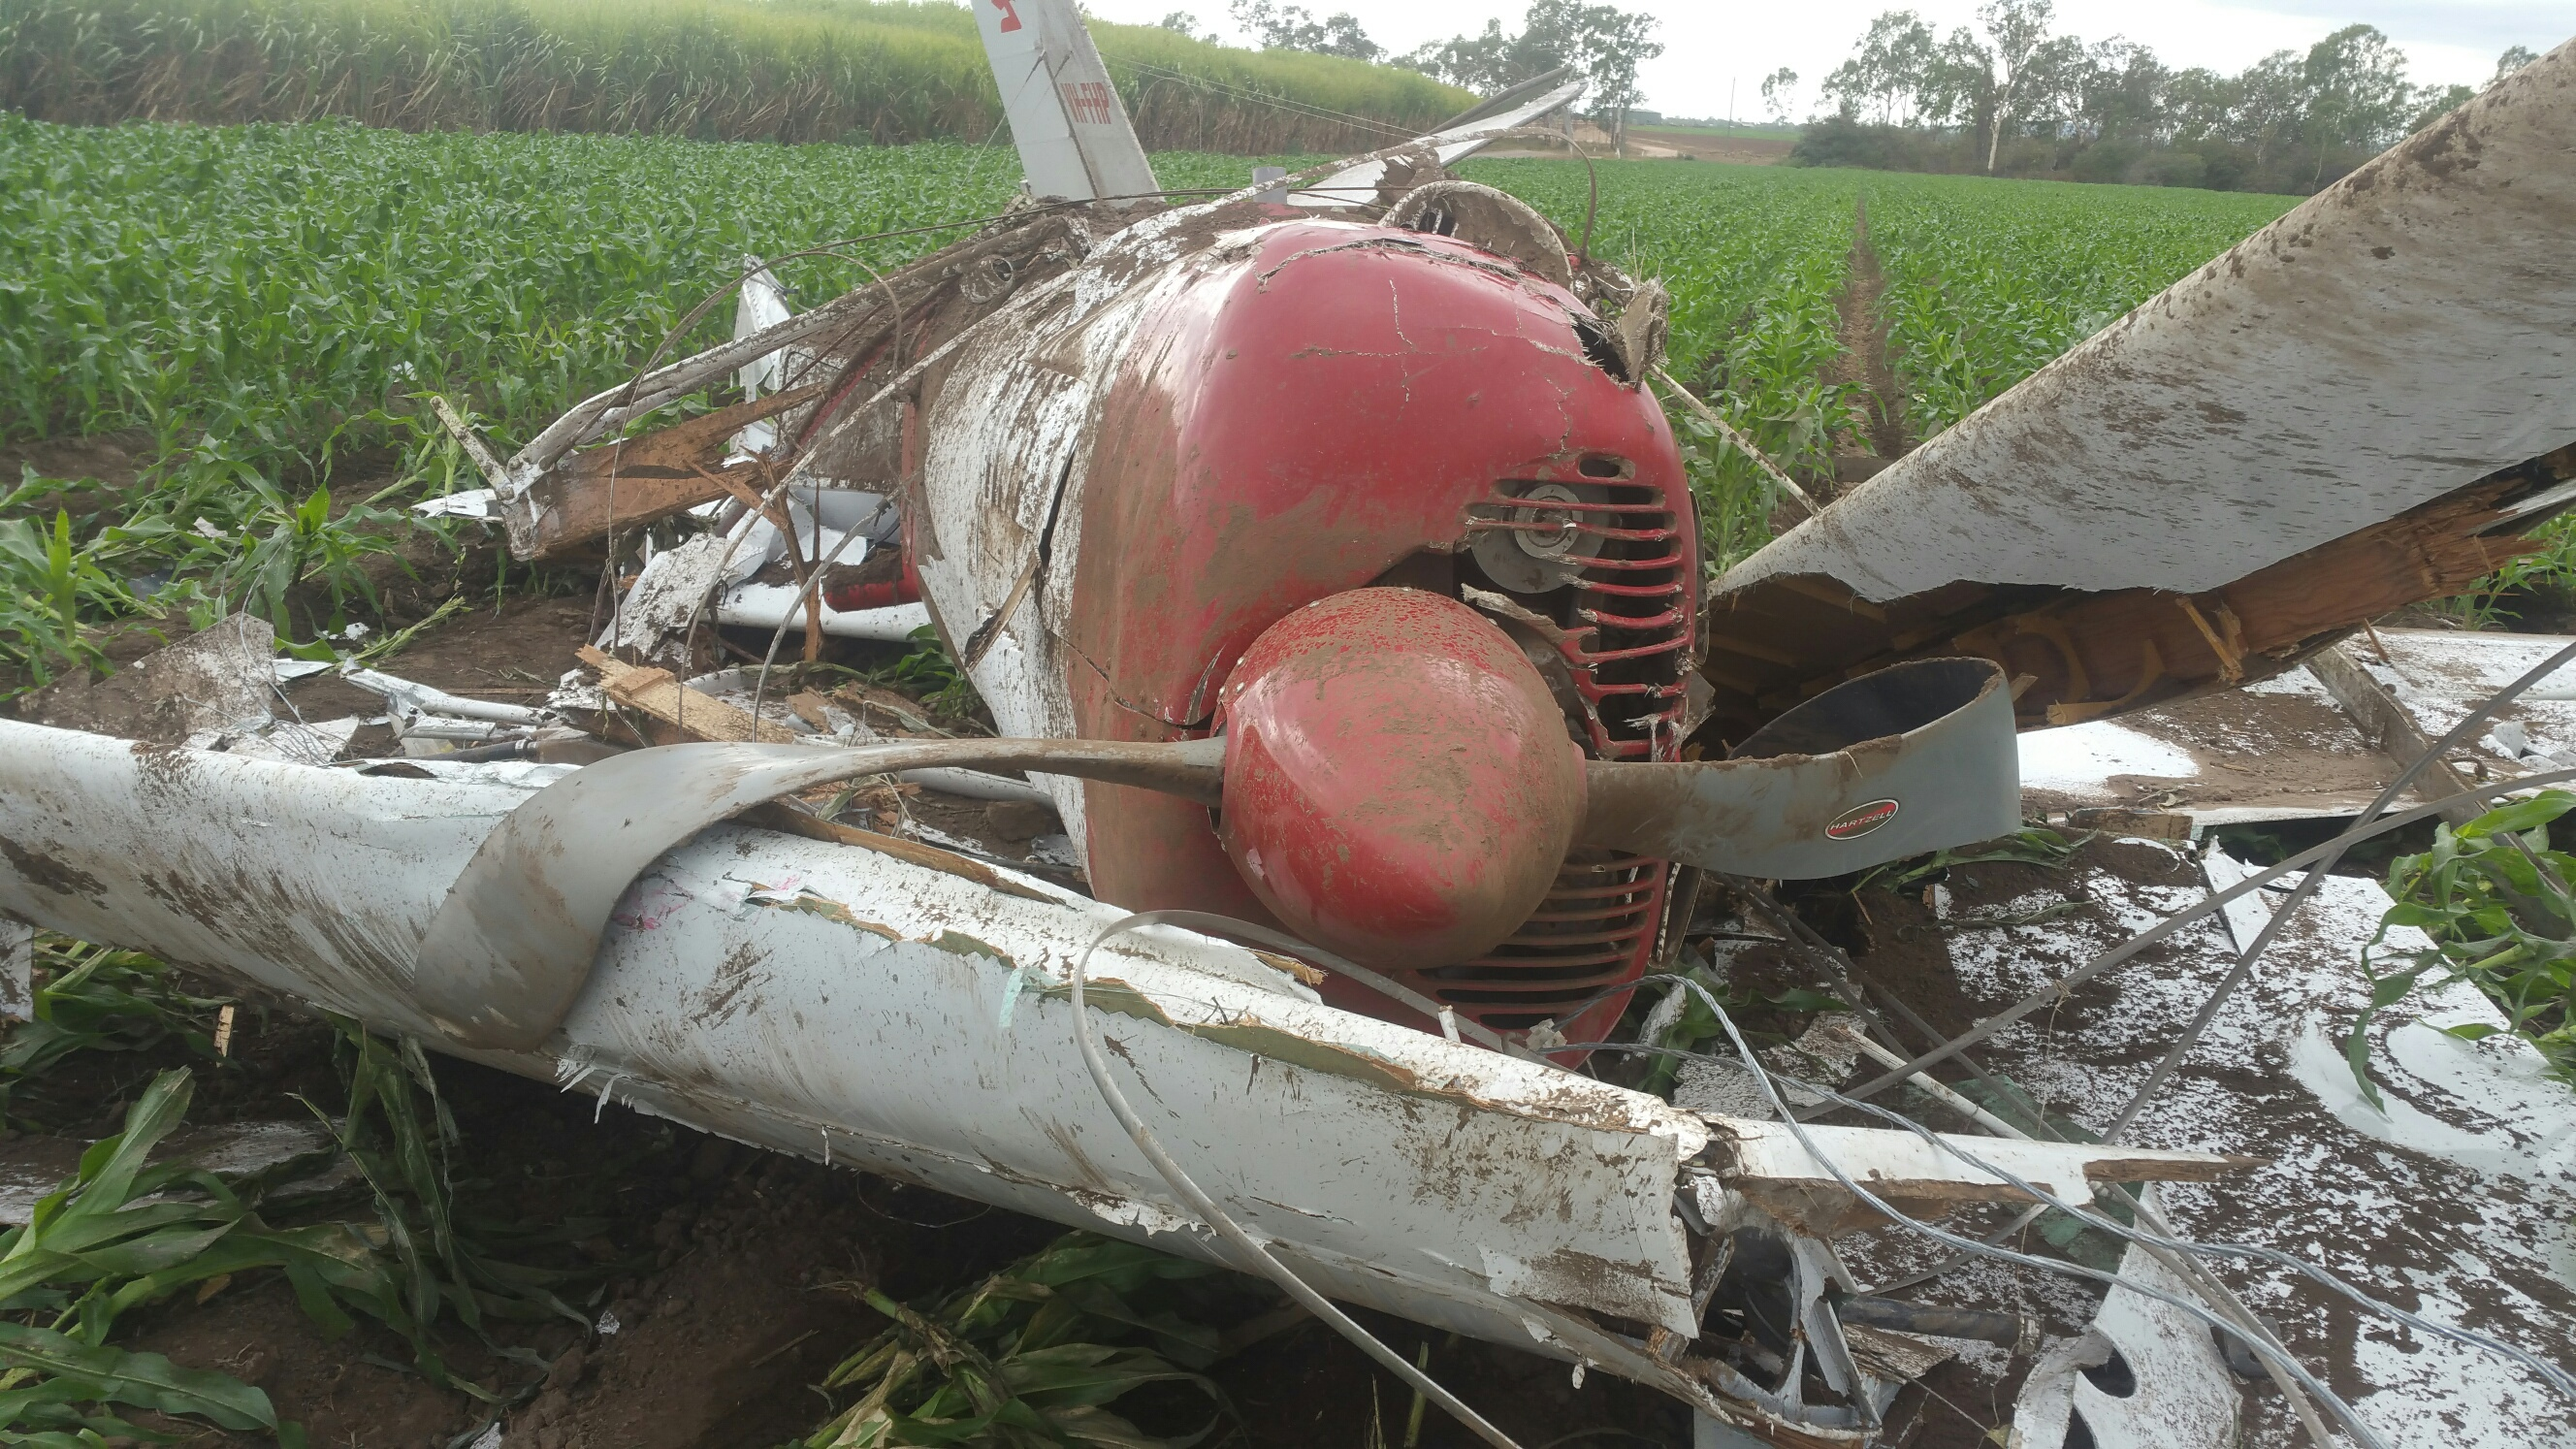 Figure 2: Photo of VH-FHP at the accident site showing damage to the aircraft and wires